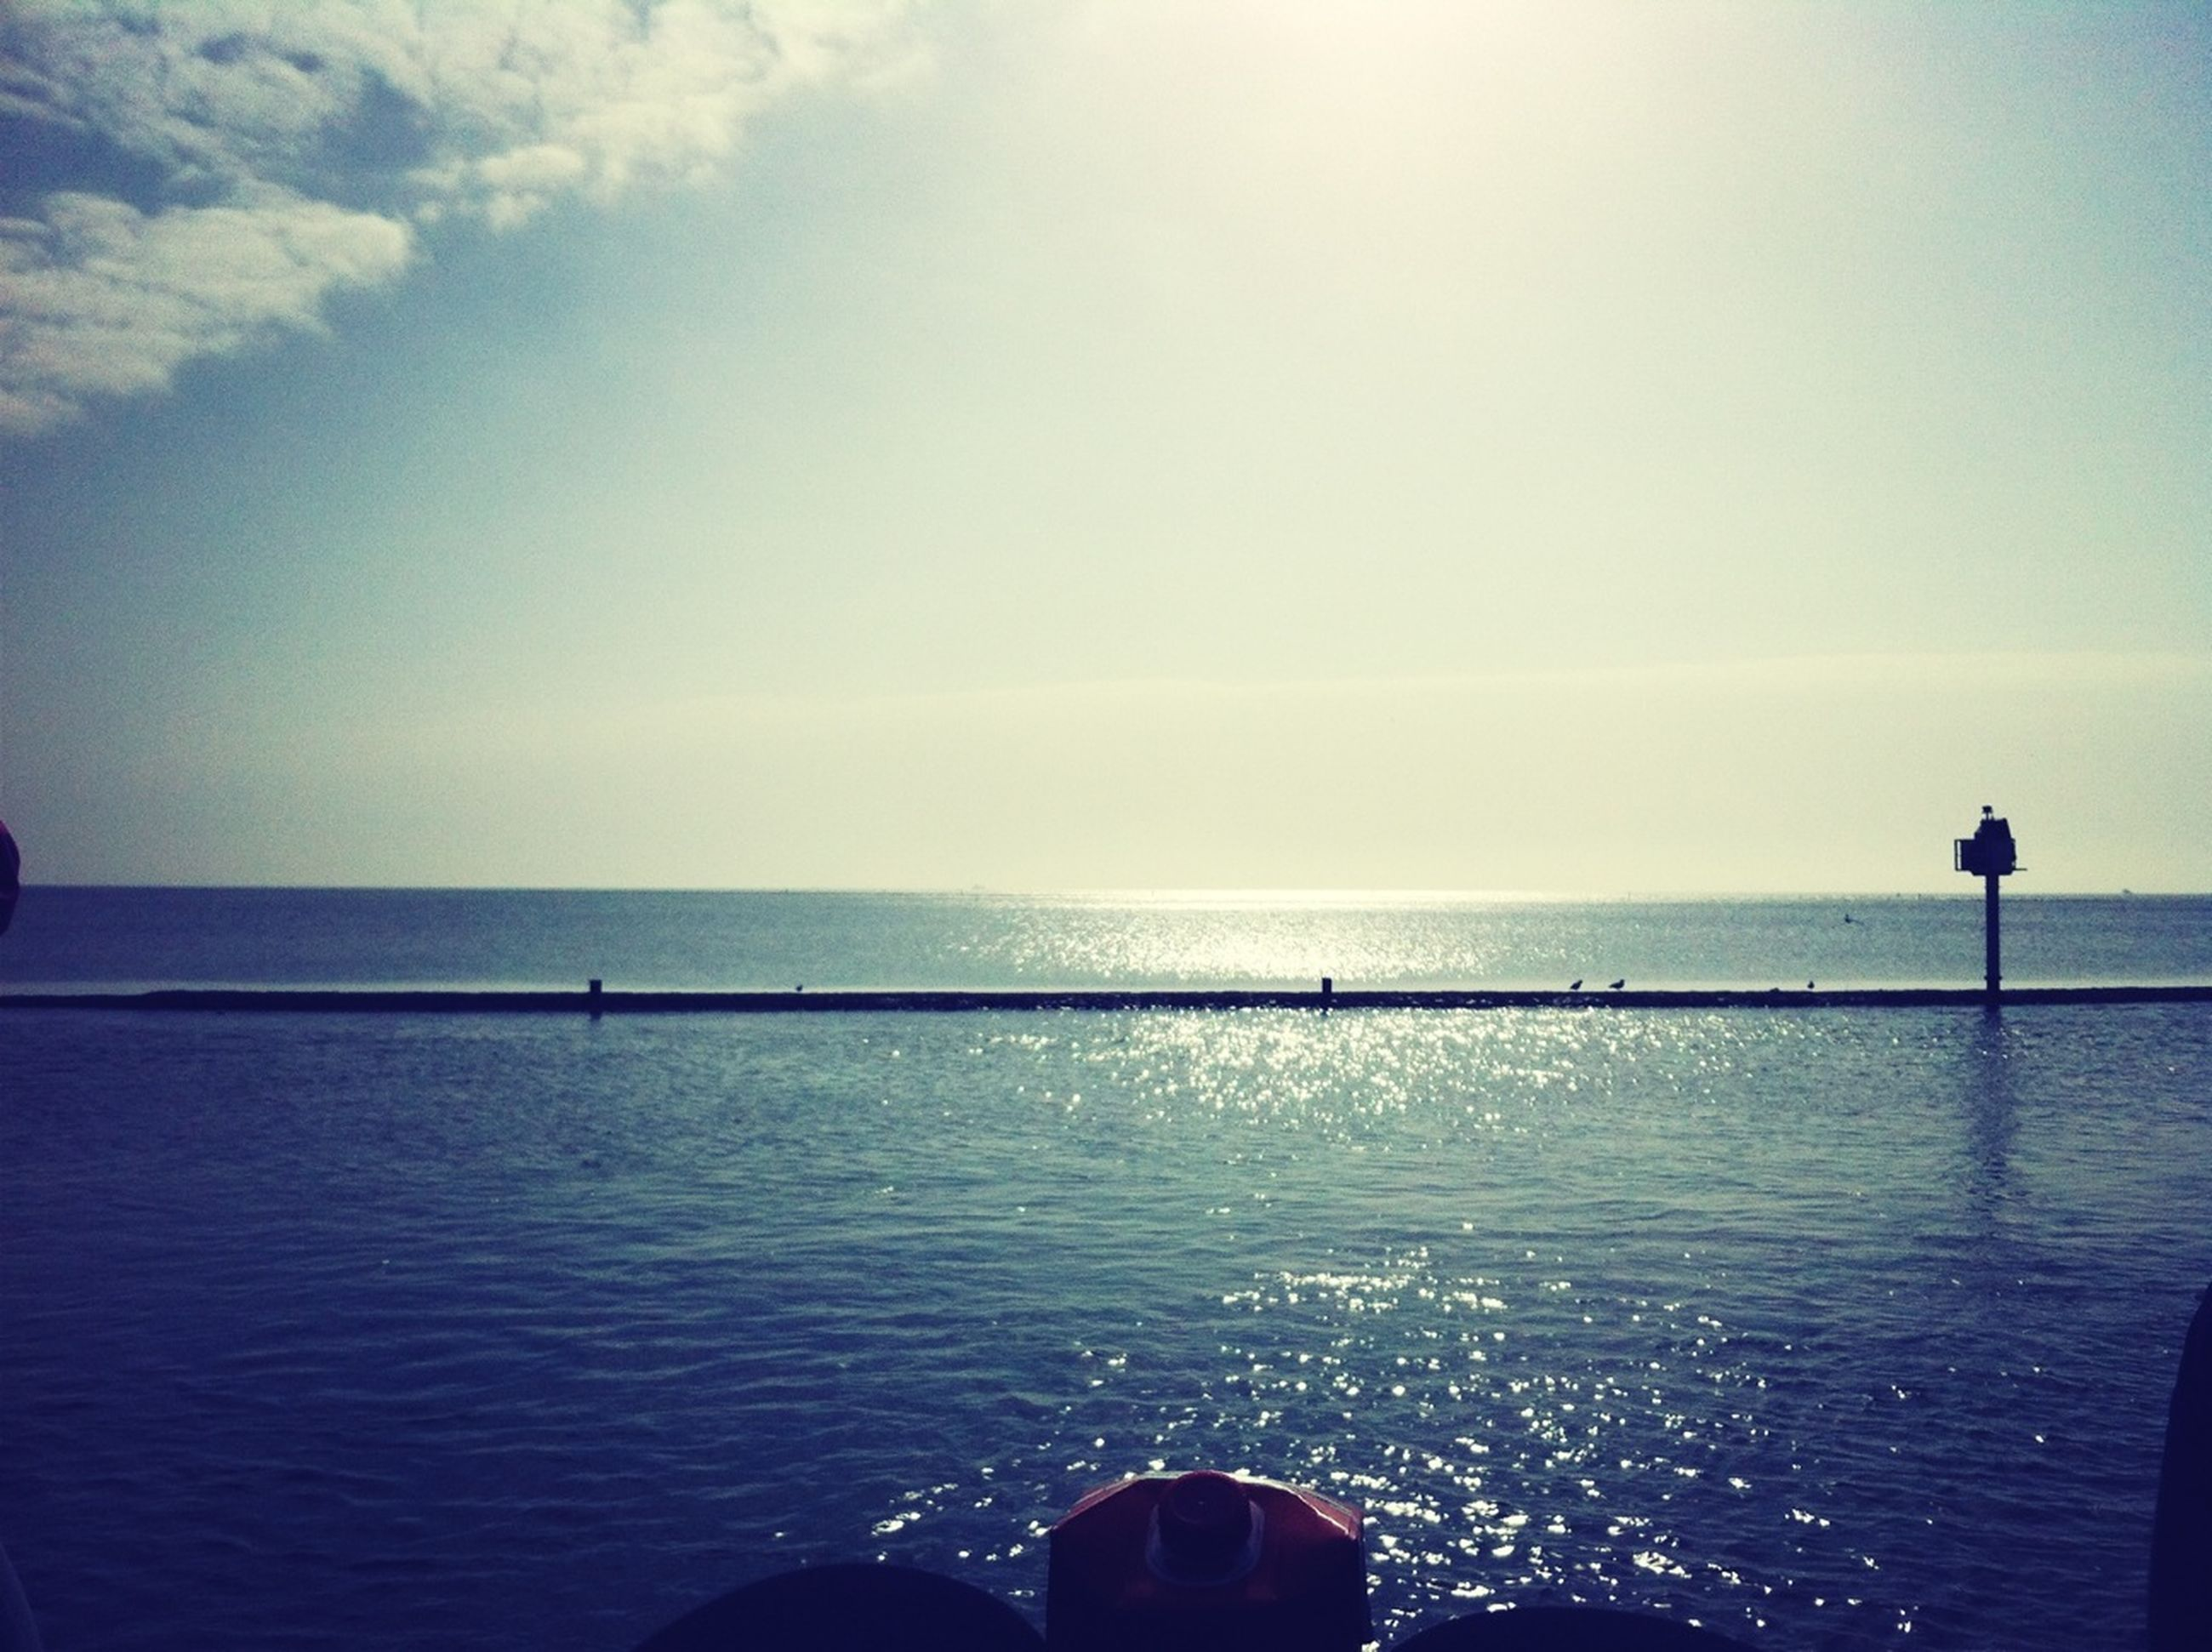 sea, horizon over water, water, scenics, tranquil scene, tranquility, sky, beauty in nature, copy space, lifestyles, nature, men, leisure activity, clear sky, unrecognizable person, idyllic, standing, rippled